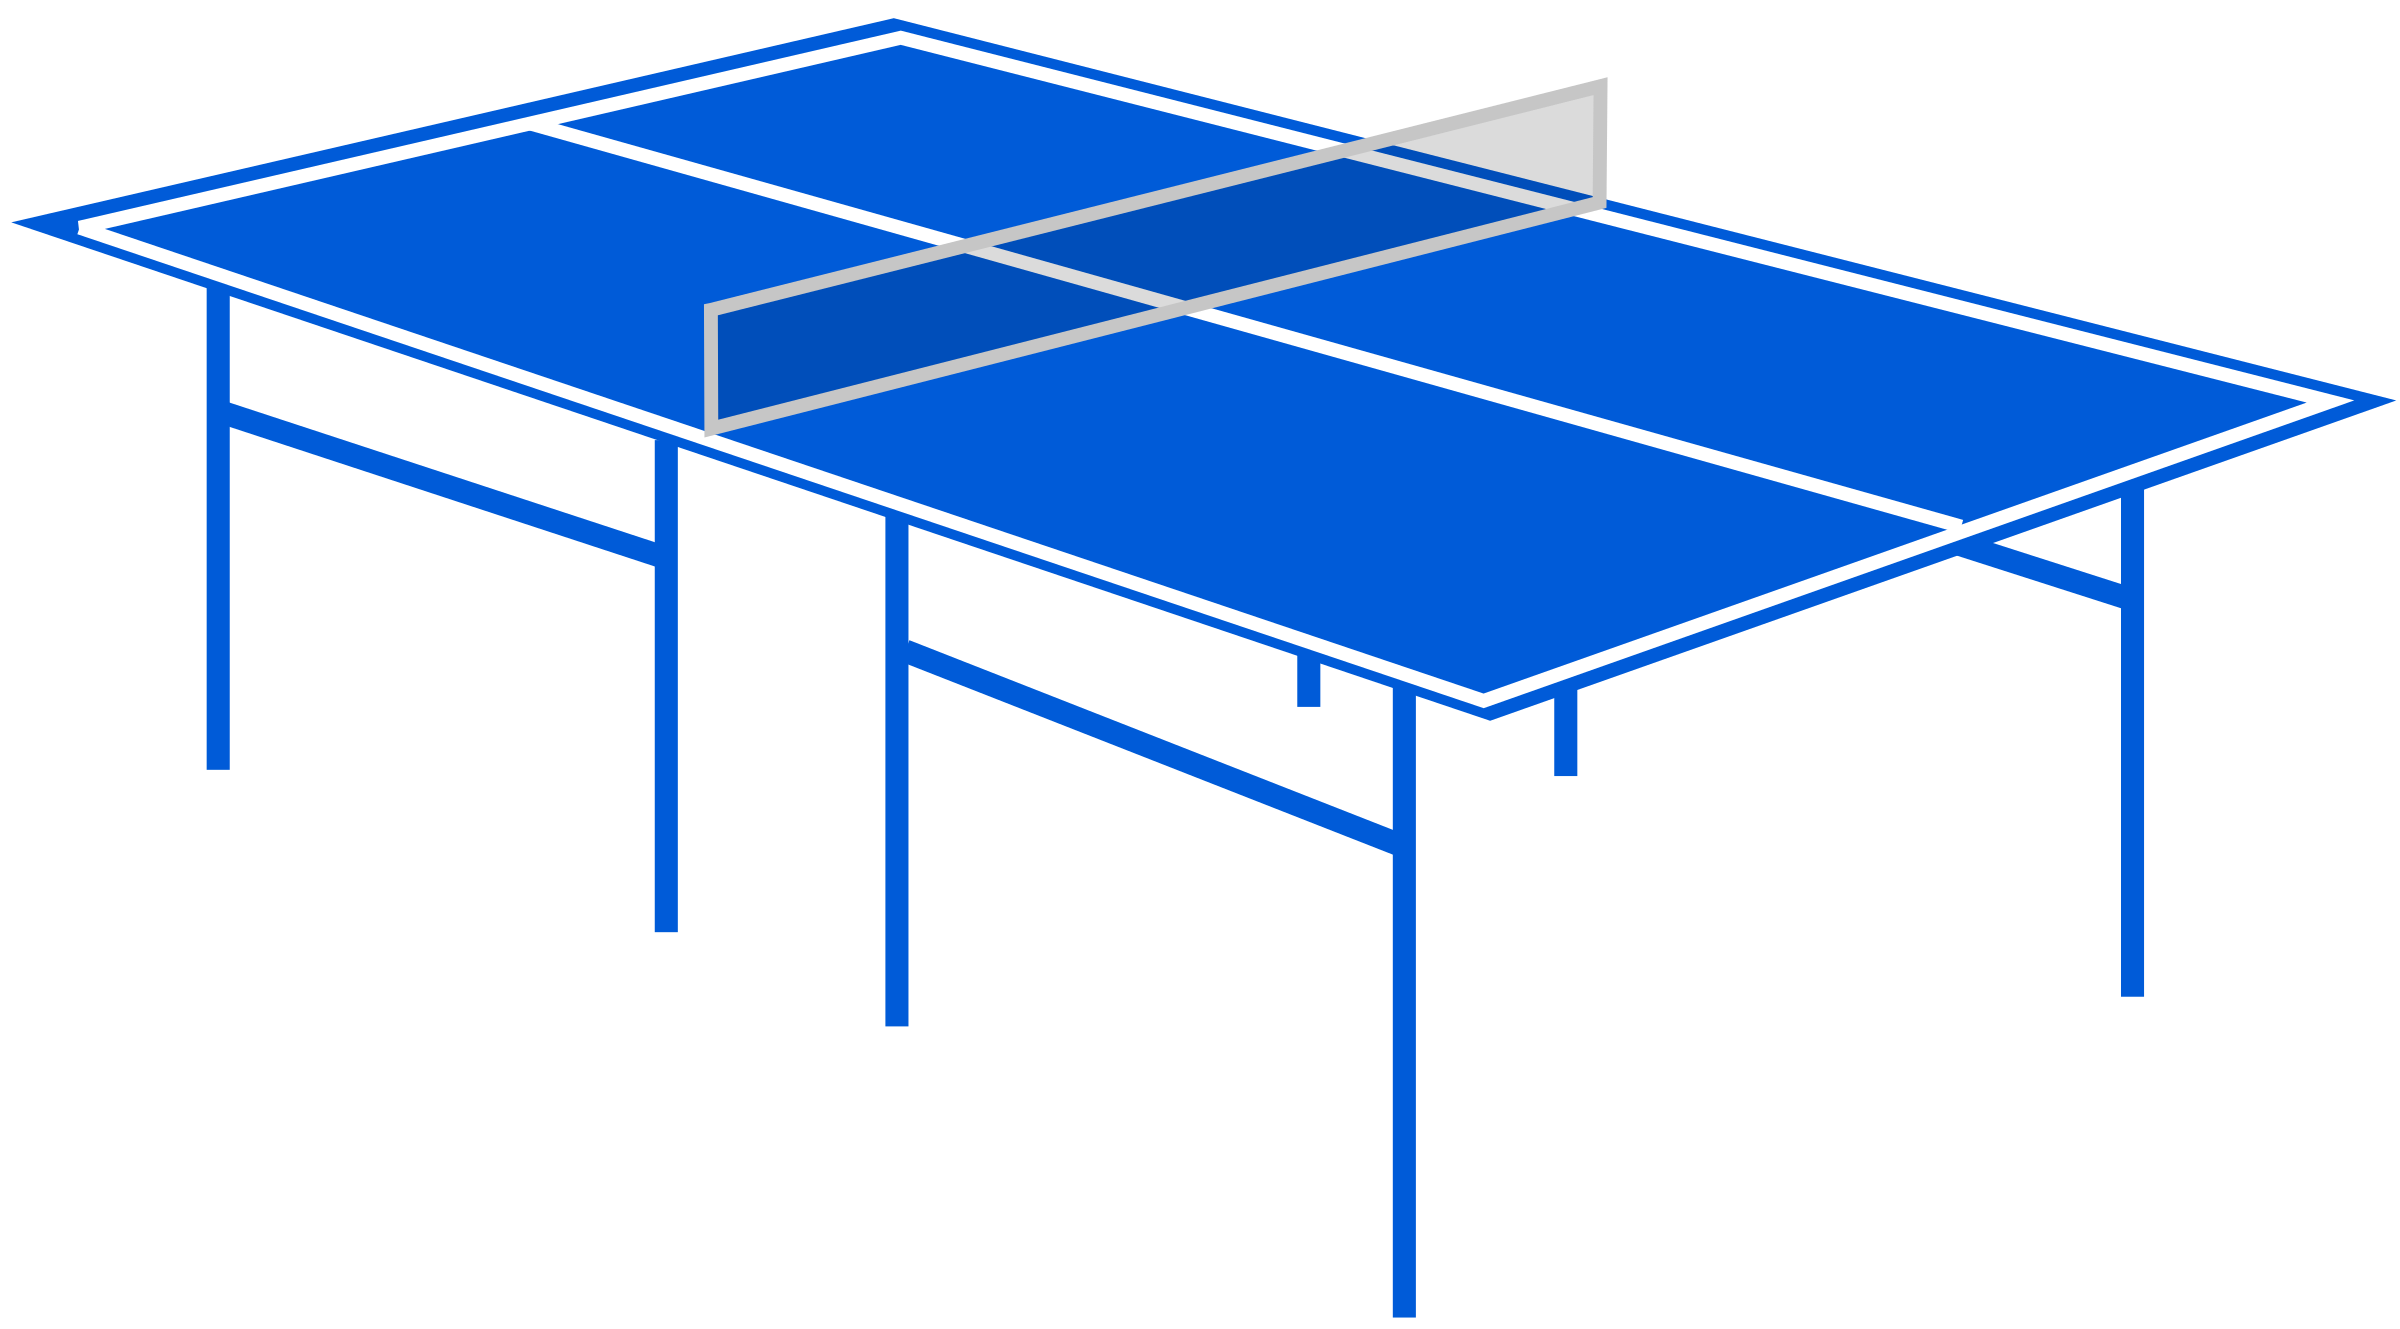 Tennis big image png. Clipart table blue table